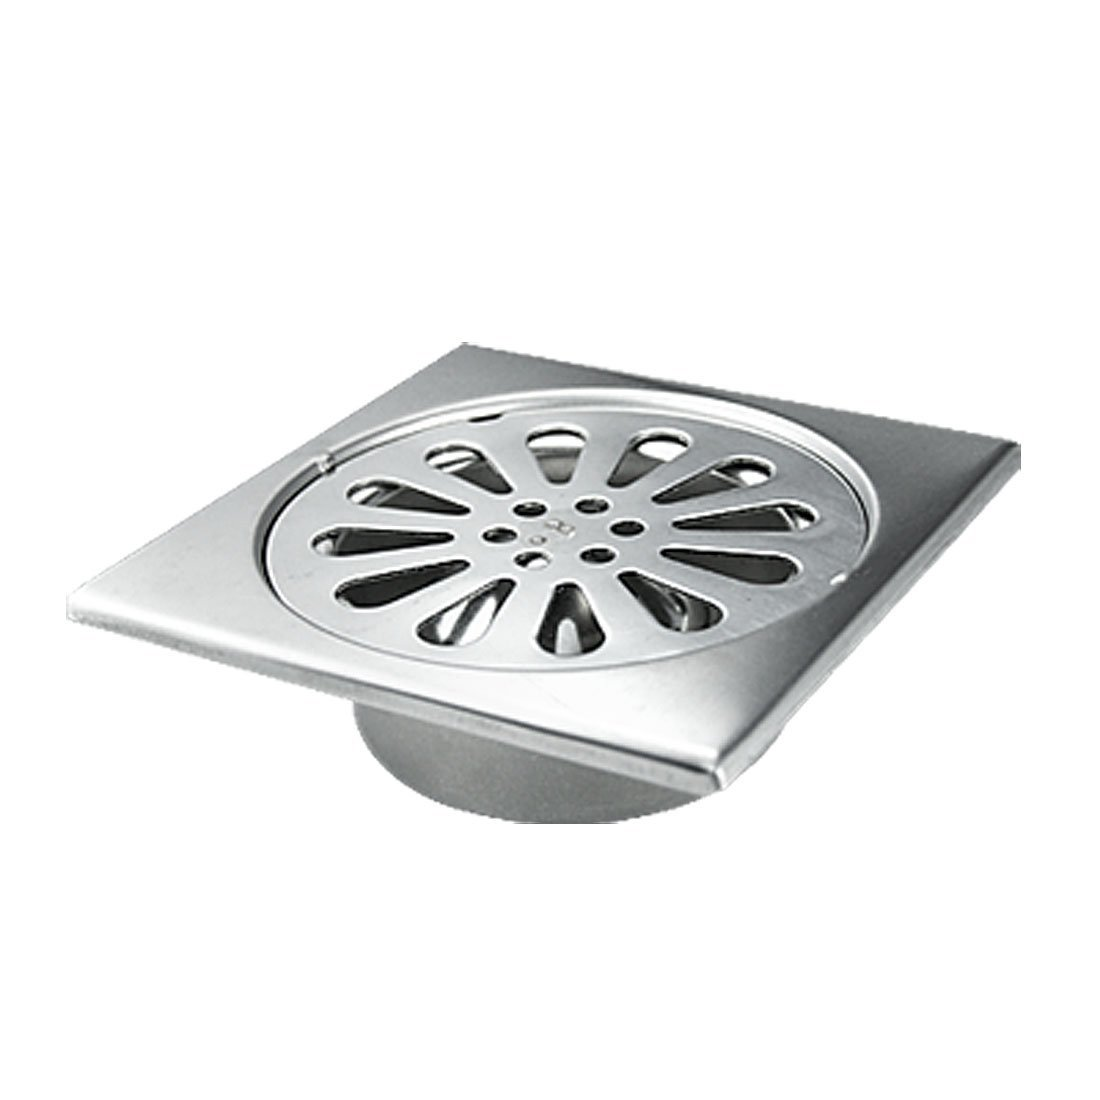 30 Off Sonline Stainless Steel Floor Drain Strainer Cover